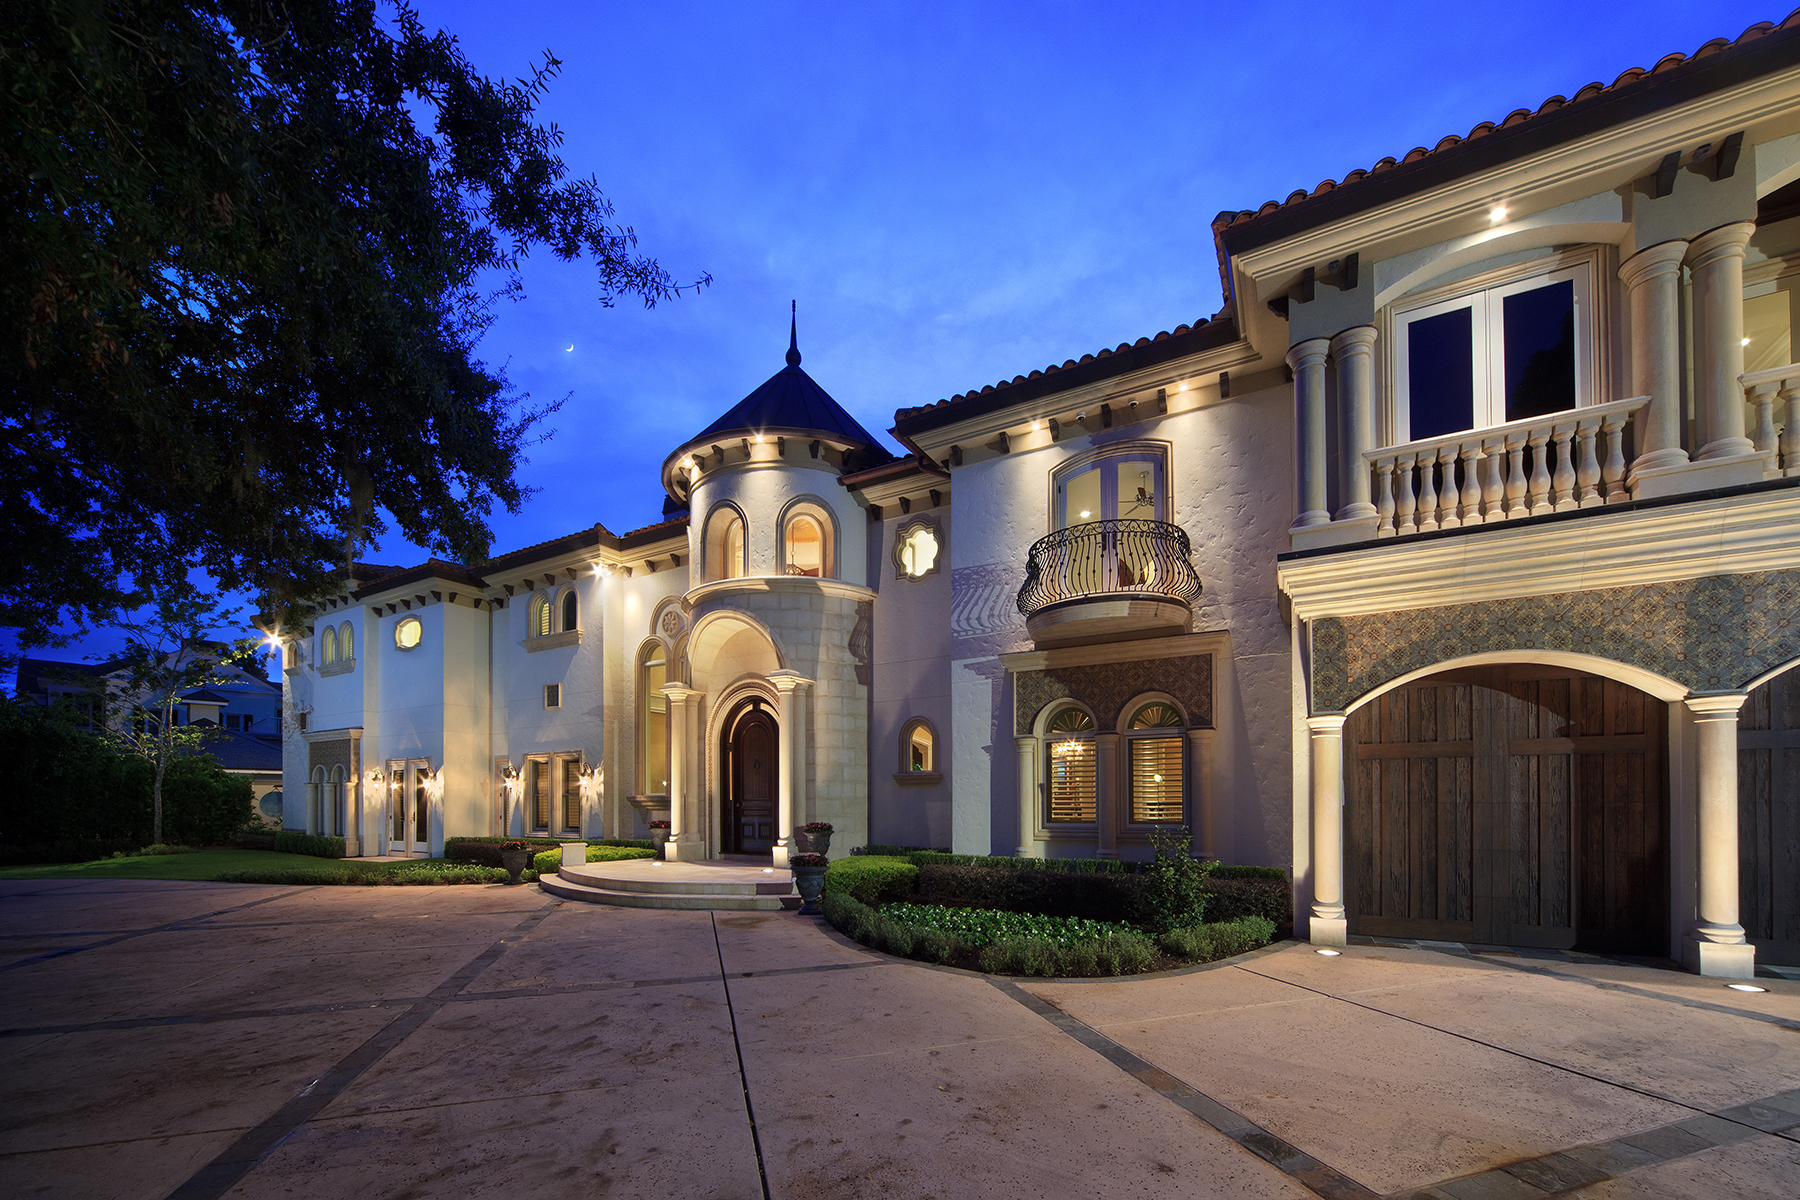 Single Family Homes for Sale at WINTER PARK 1511 Via Tuscany Winter Park, Florida 32789 United States